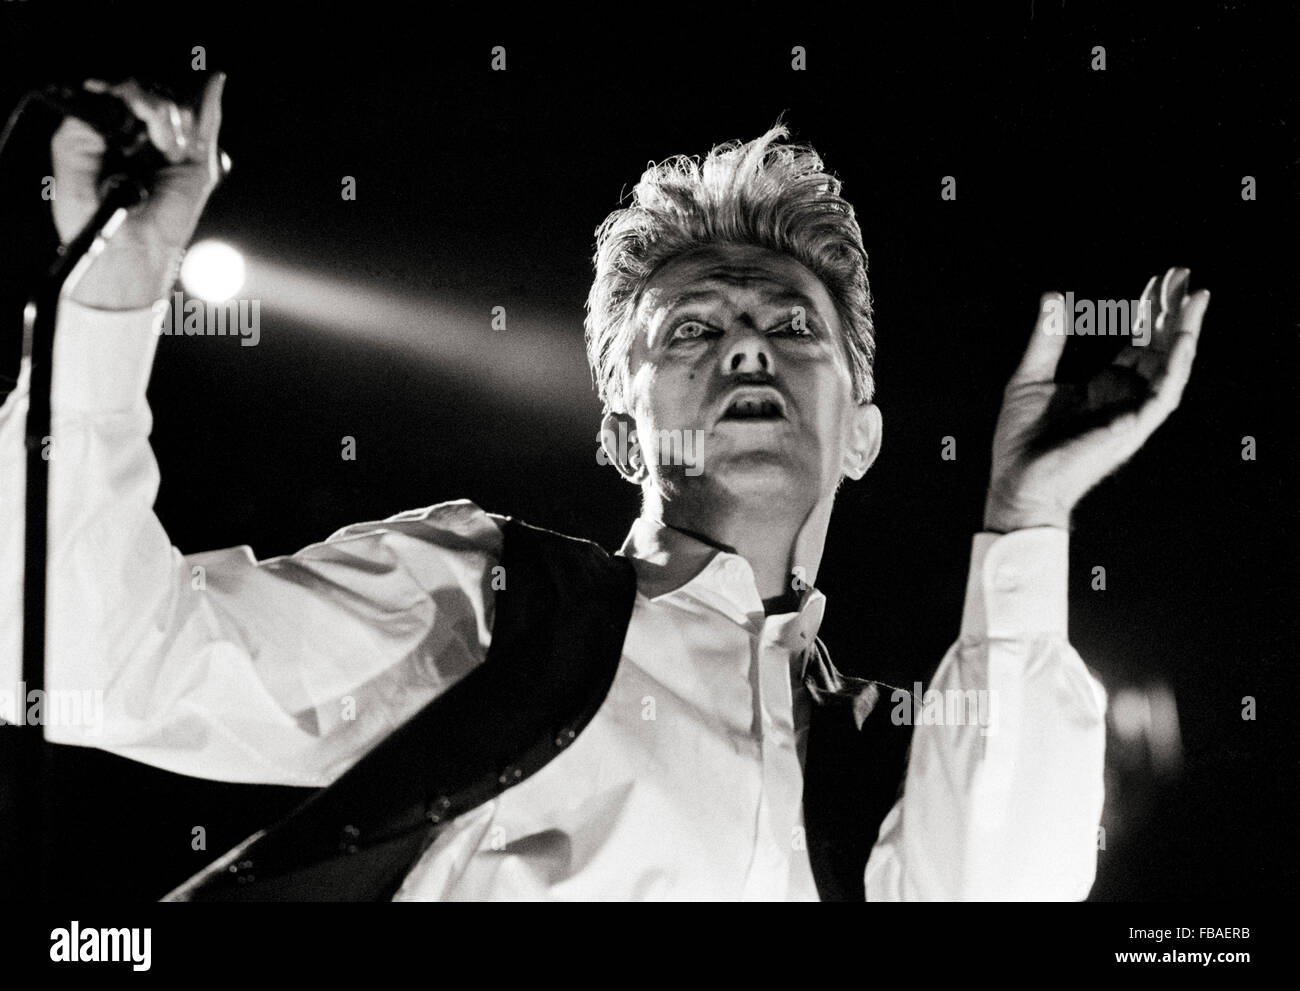 David Bowie during the Sound and Vision tour 5th August 1990 at Milton Keynes Bowl, UK. - Stock Image